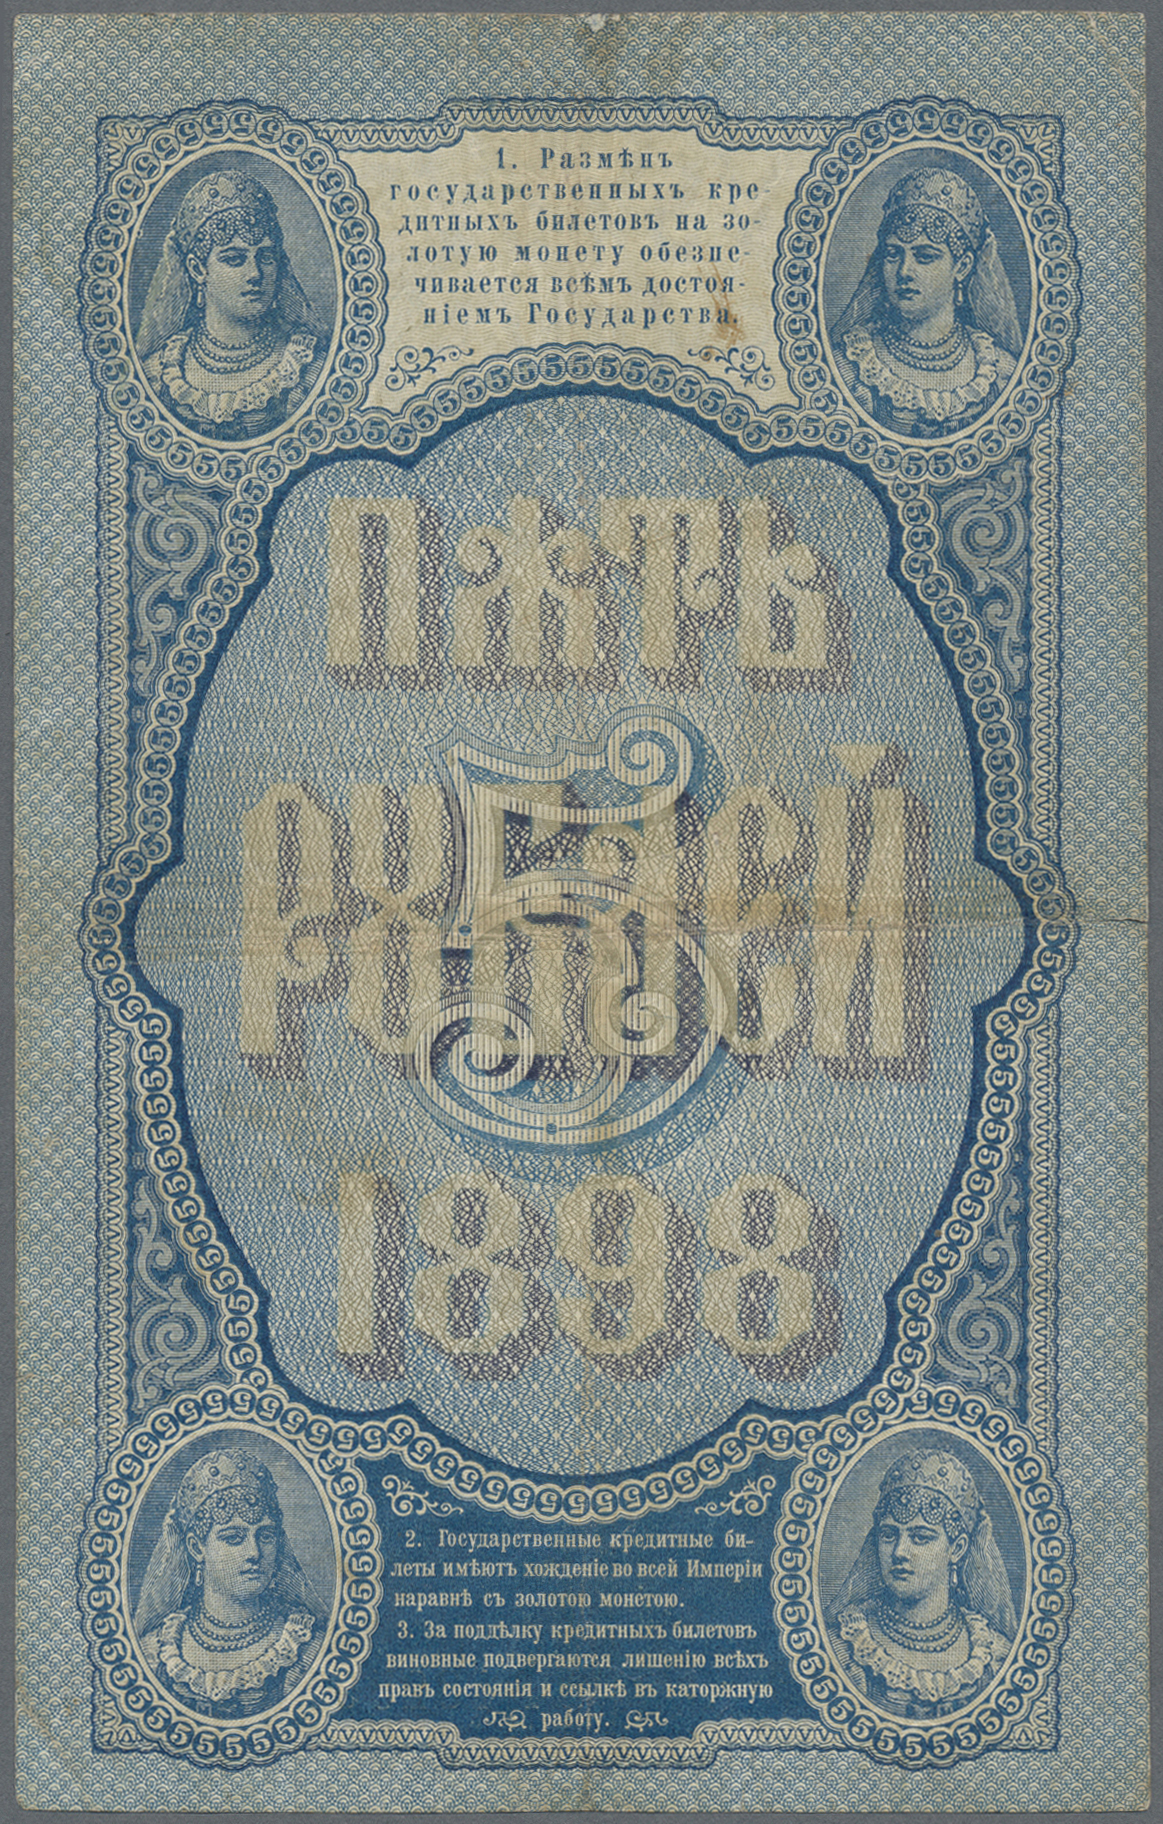 Lot 00624 - Russia / Russland | Banknoten  -  Auktionshaus Christoph Gärtner GmbH & Co. KG Sale #48 The Banknotes